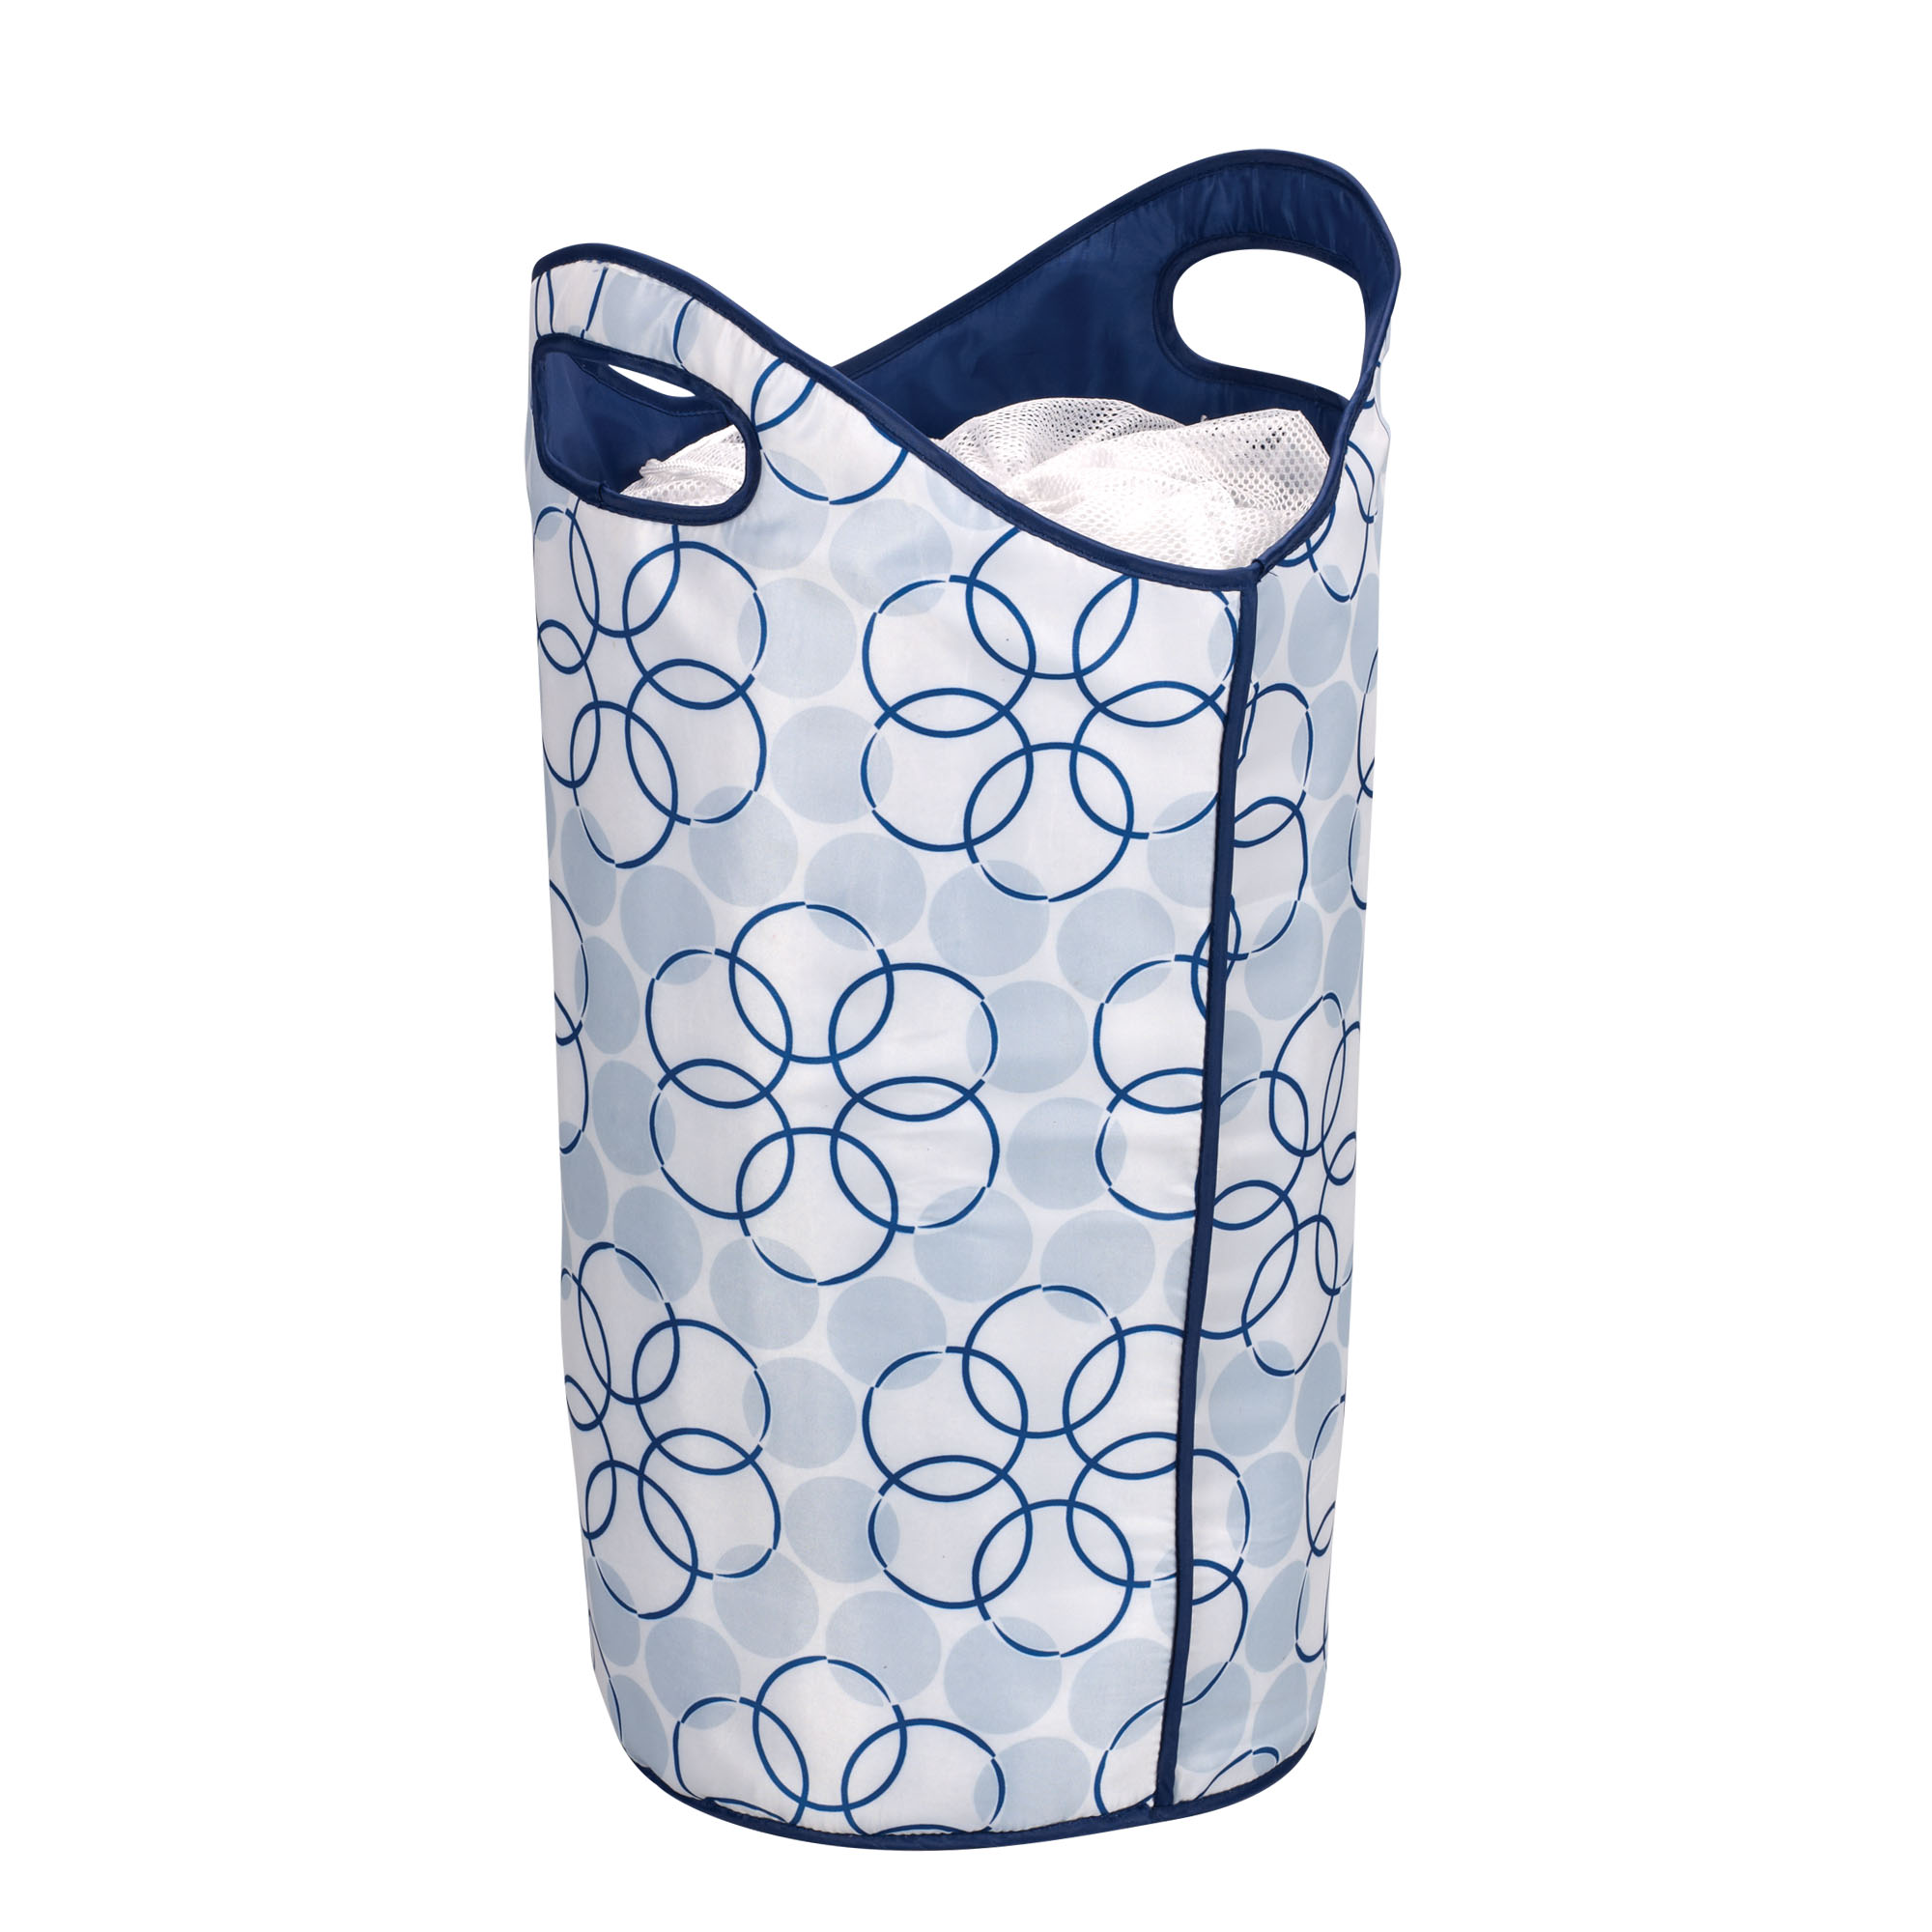 Soft Sided Hamper/Tote - Magic Rings